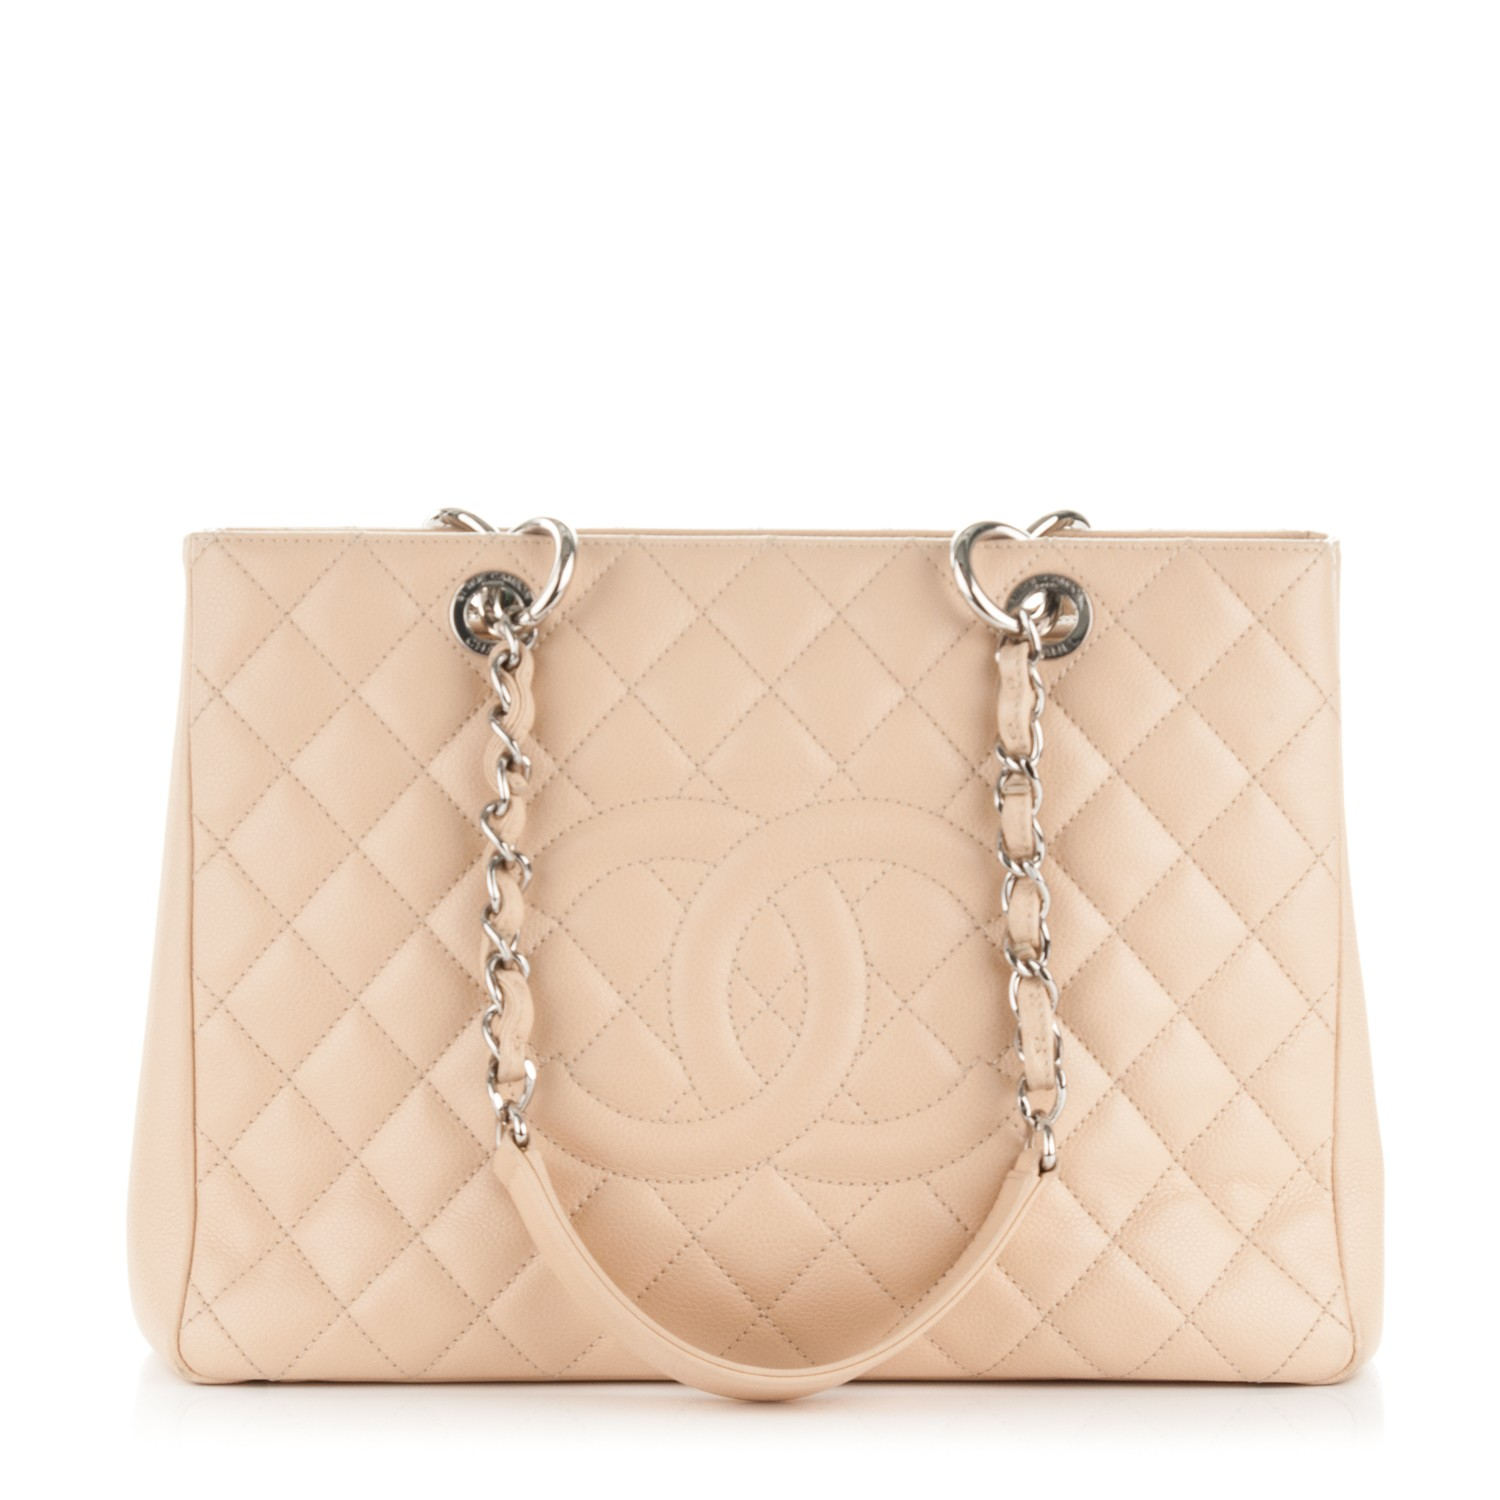 0a9c79621b9e CHANEL Caviar Quilted Grand Shopping Tote GST Beige Clair 177850